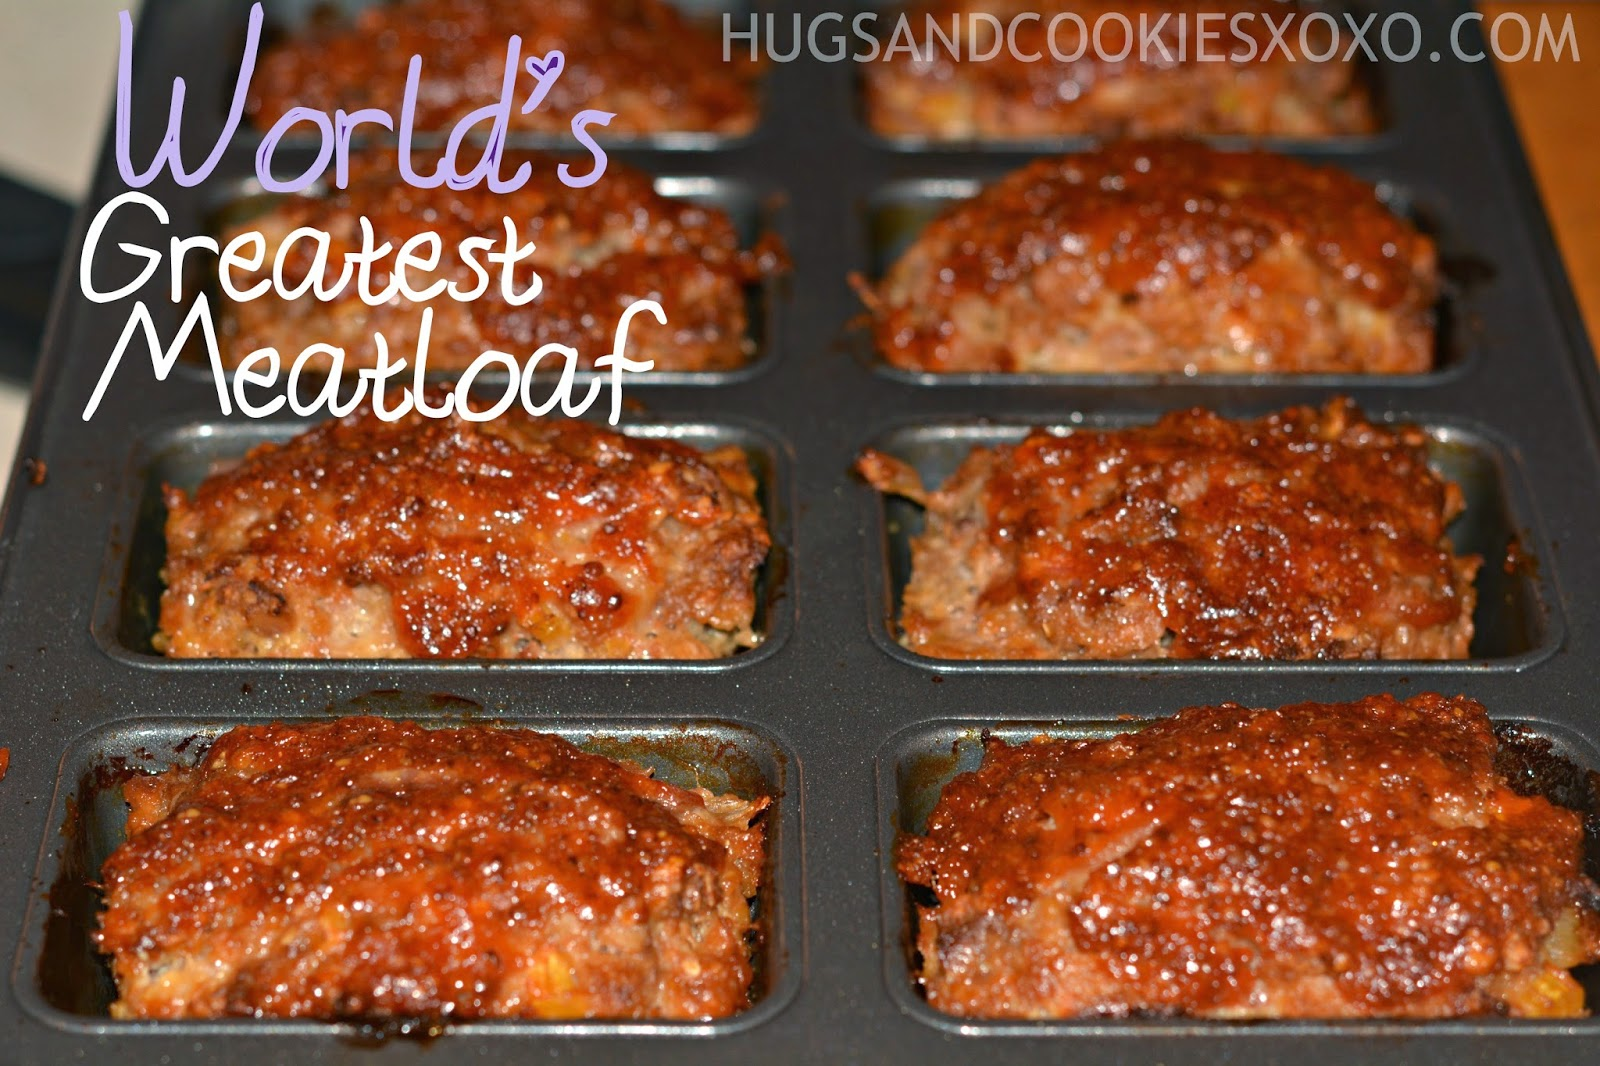 This is the best meatloaf ever!! Thanks for the recipe, Mom!!!!